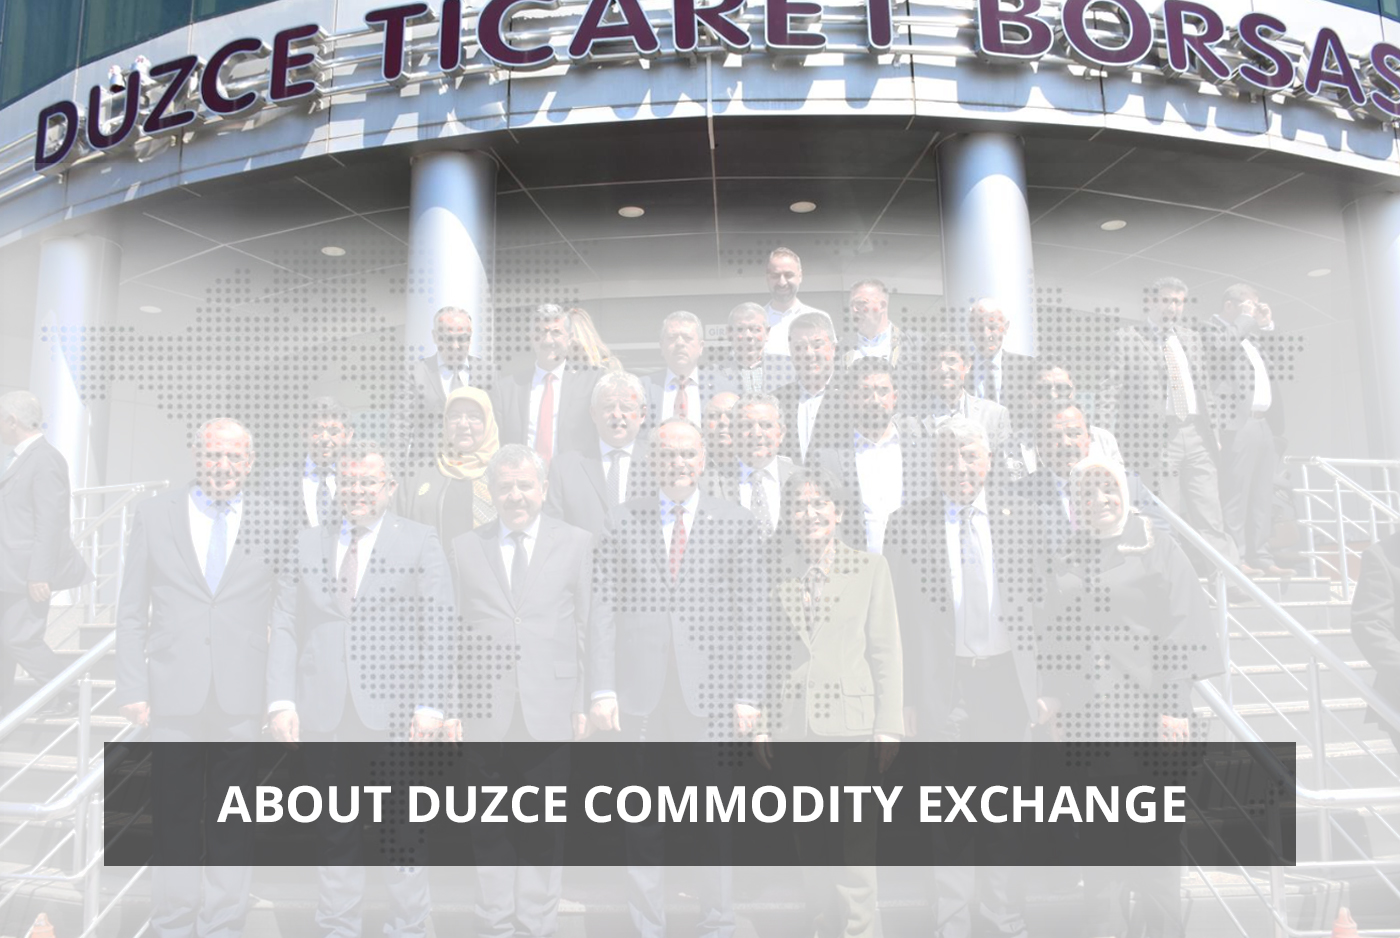 About Duzce Commodity Exchange